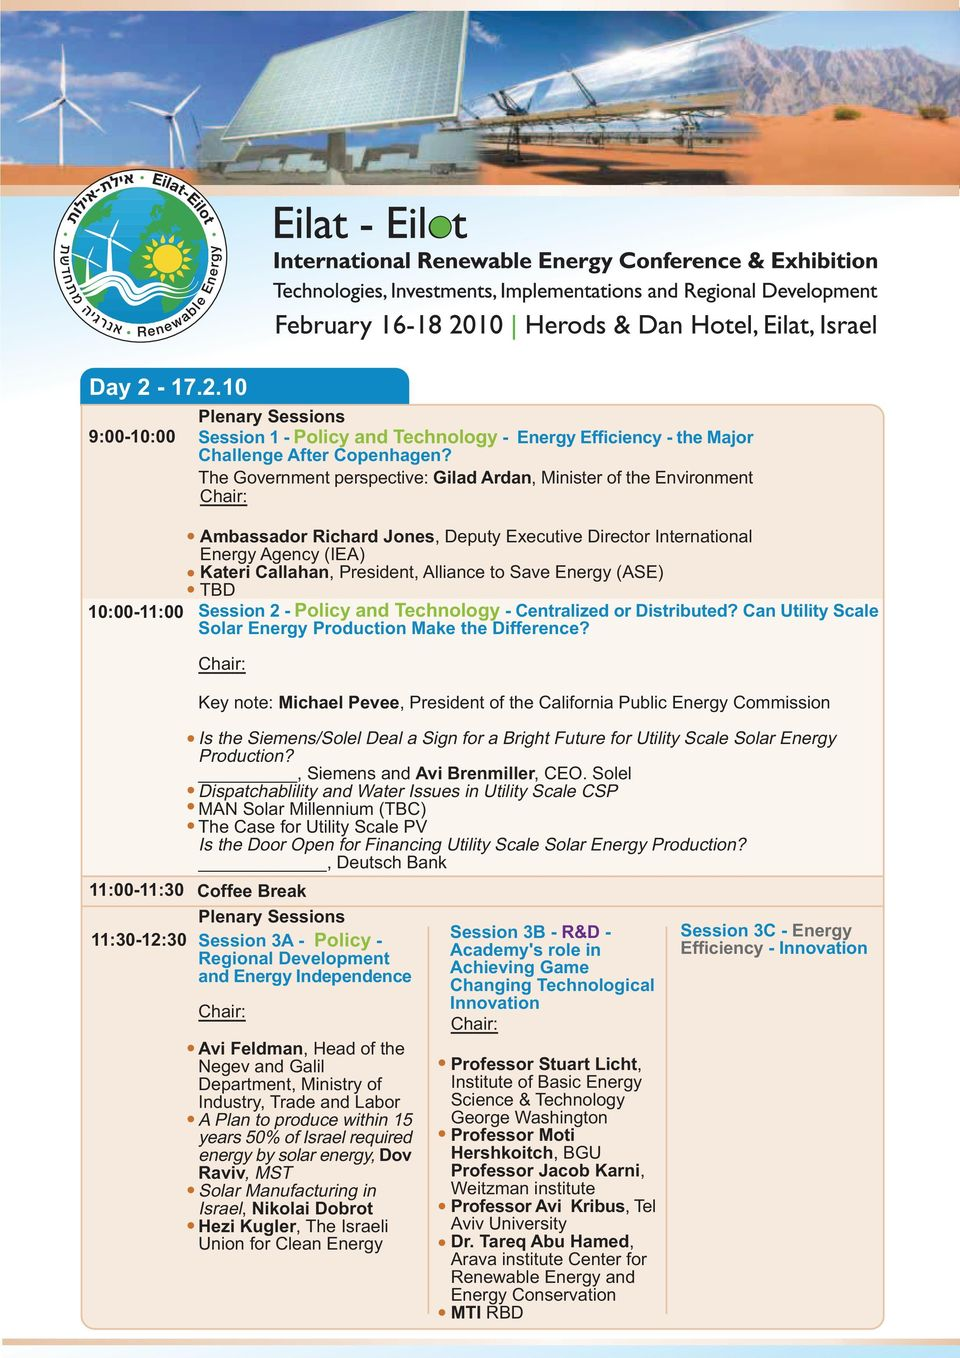 Alliance to Save Energy (ASE) Session 2 - Policy and Technology - Centralized or Distributed? Can Utility Scale Solar Energy Production Make the Difference?